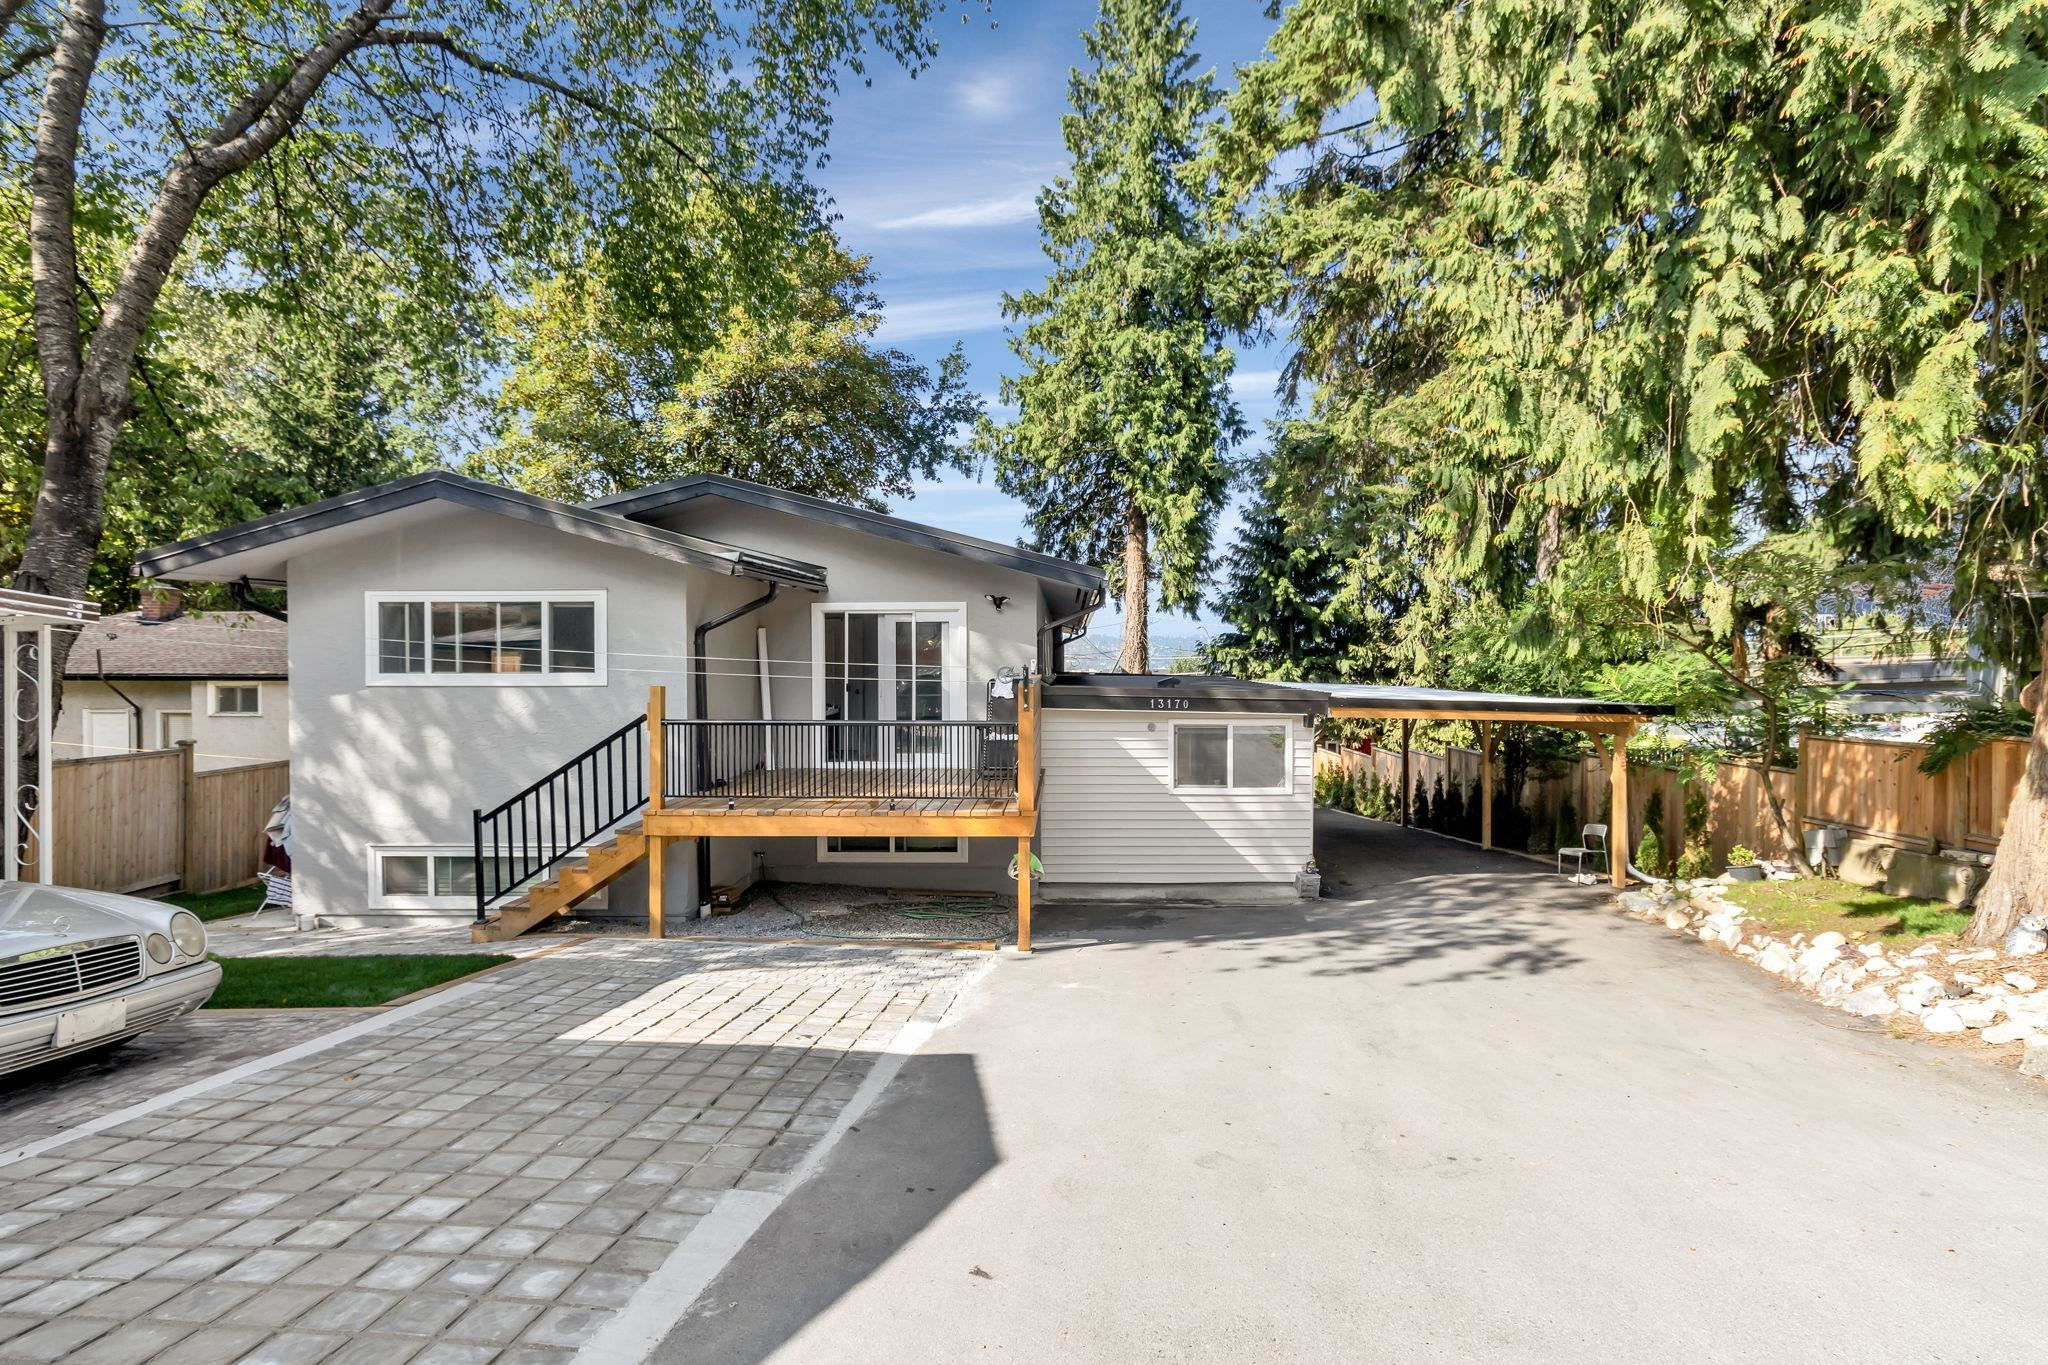 13170 112 AVENUE - Whalley House/Single Family for sale, 8 Bedrooms (R2620111) - #1